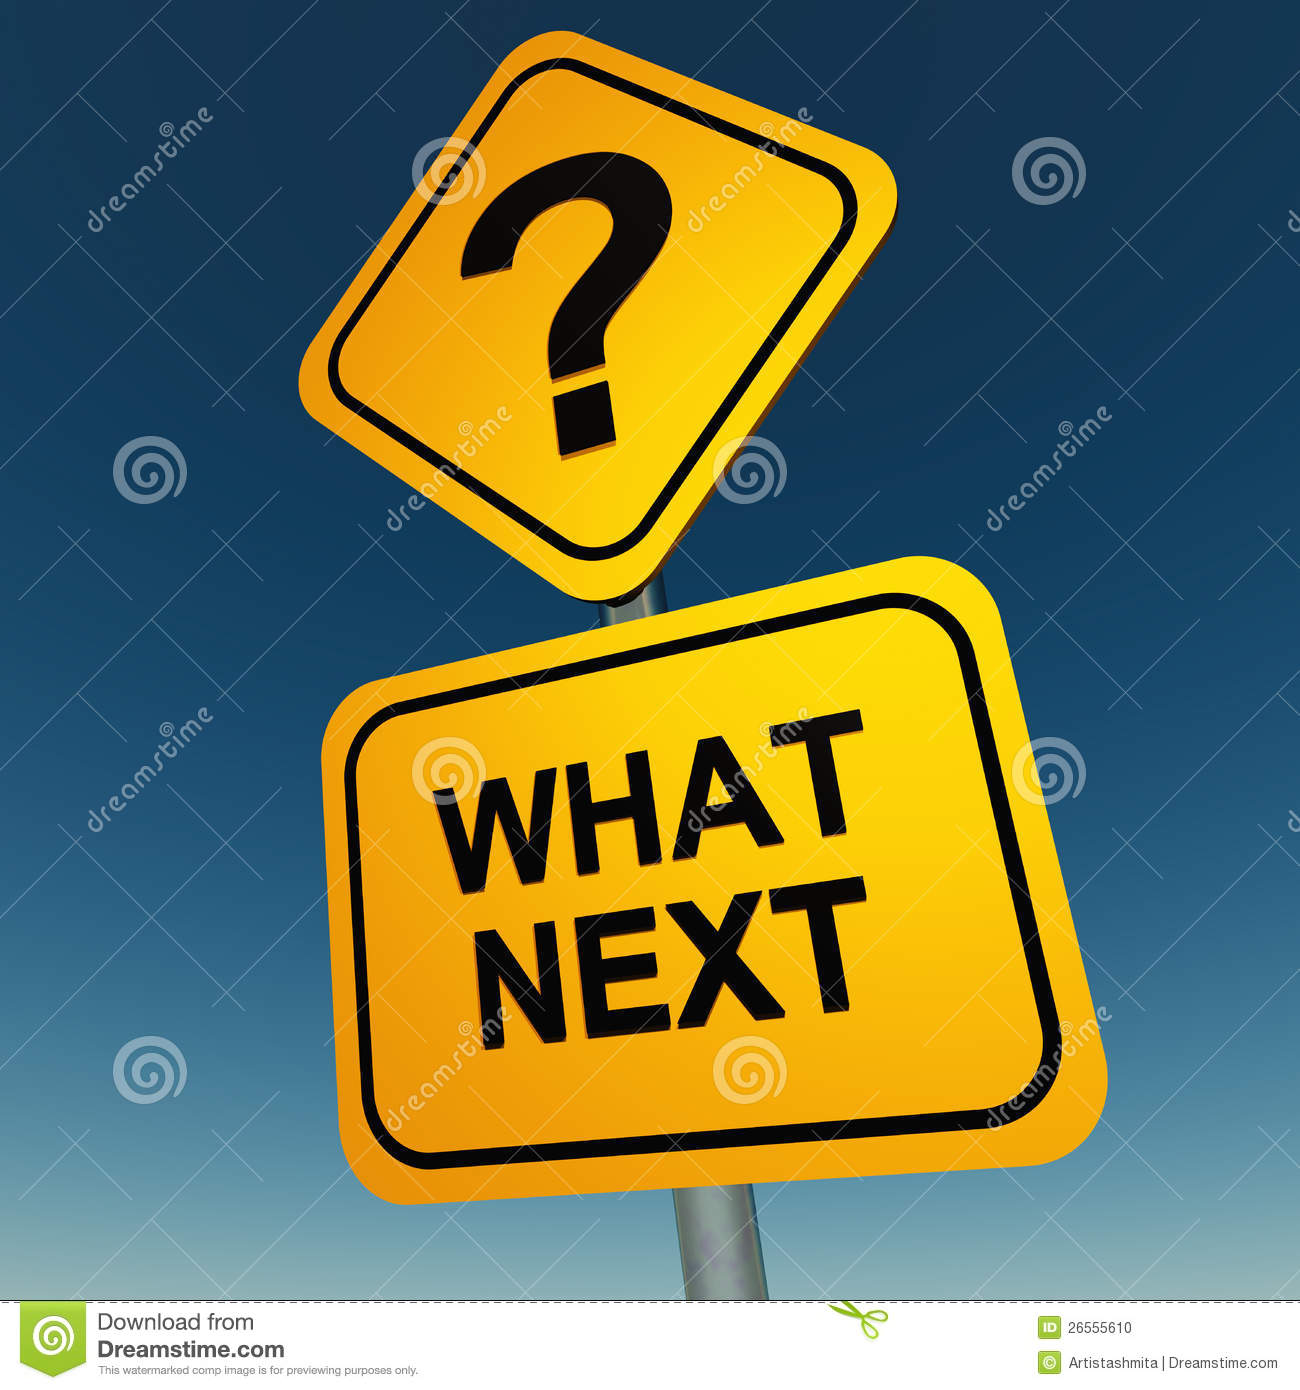 What next question mark on road sign against a cloudless sky, planning ...